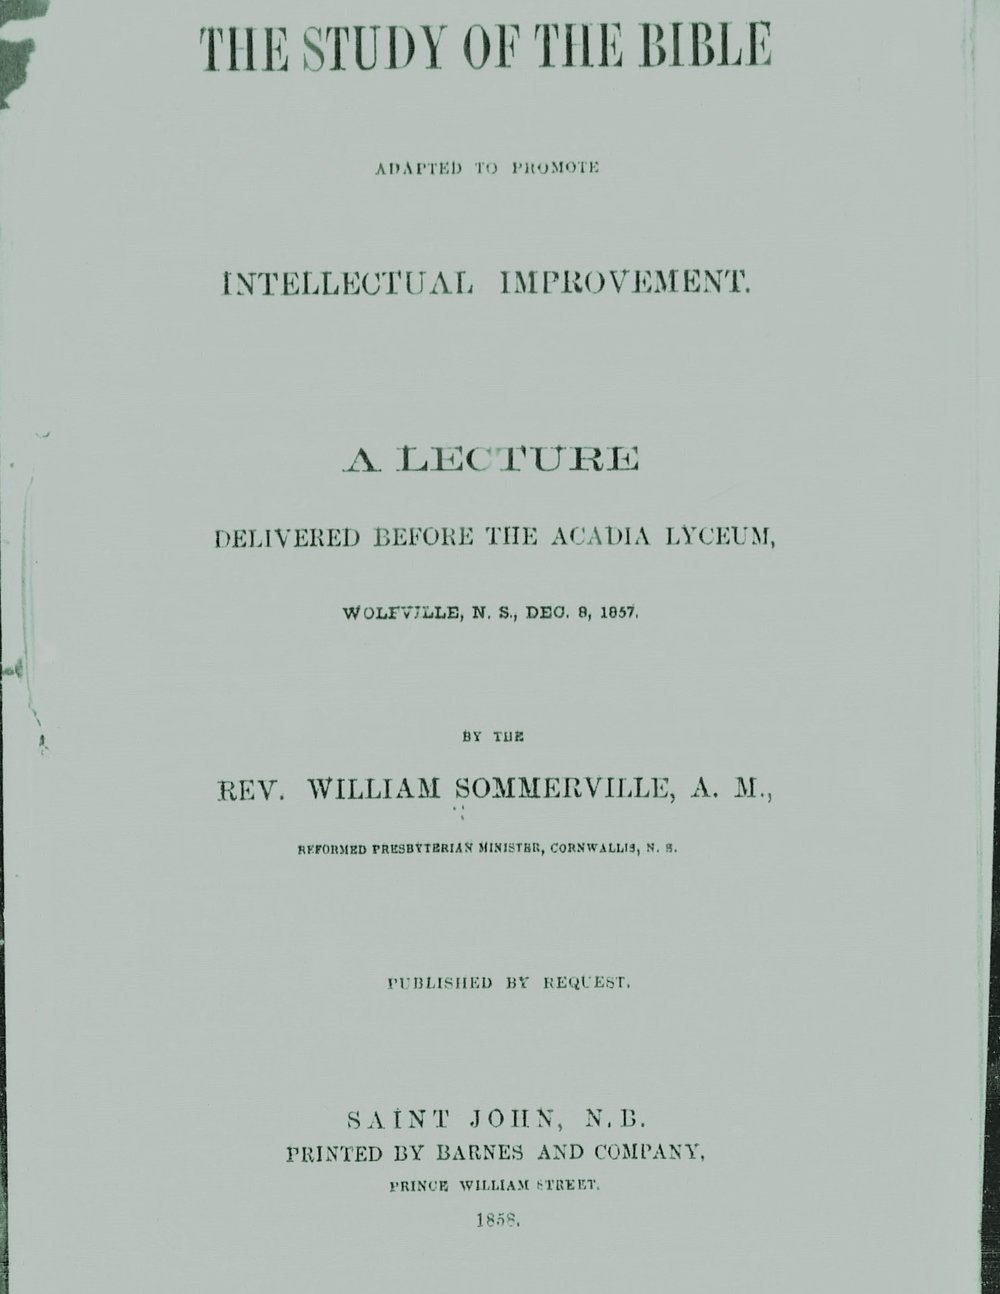 Sommerville, William, The Study of the Bible Adapted to Promote Intellectual Improvement Title Page.jpg